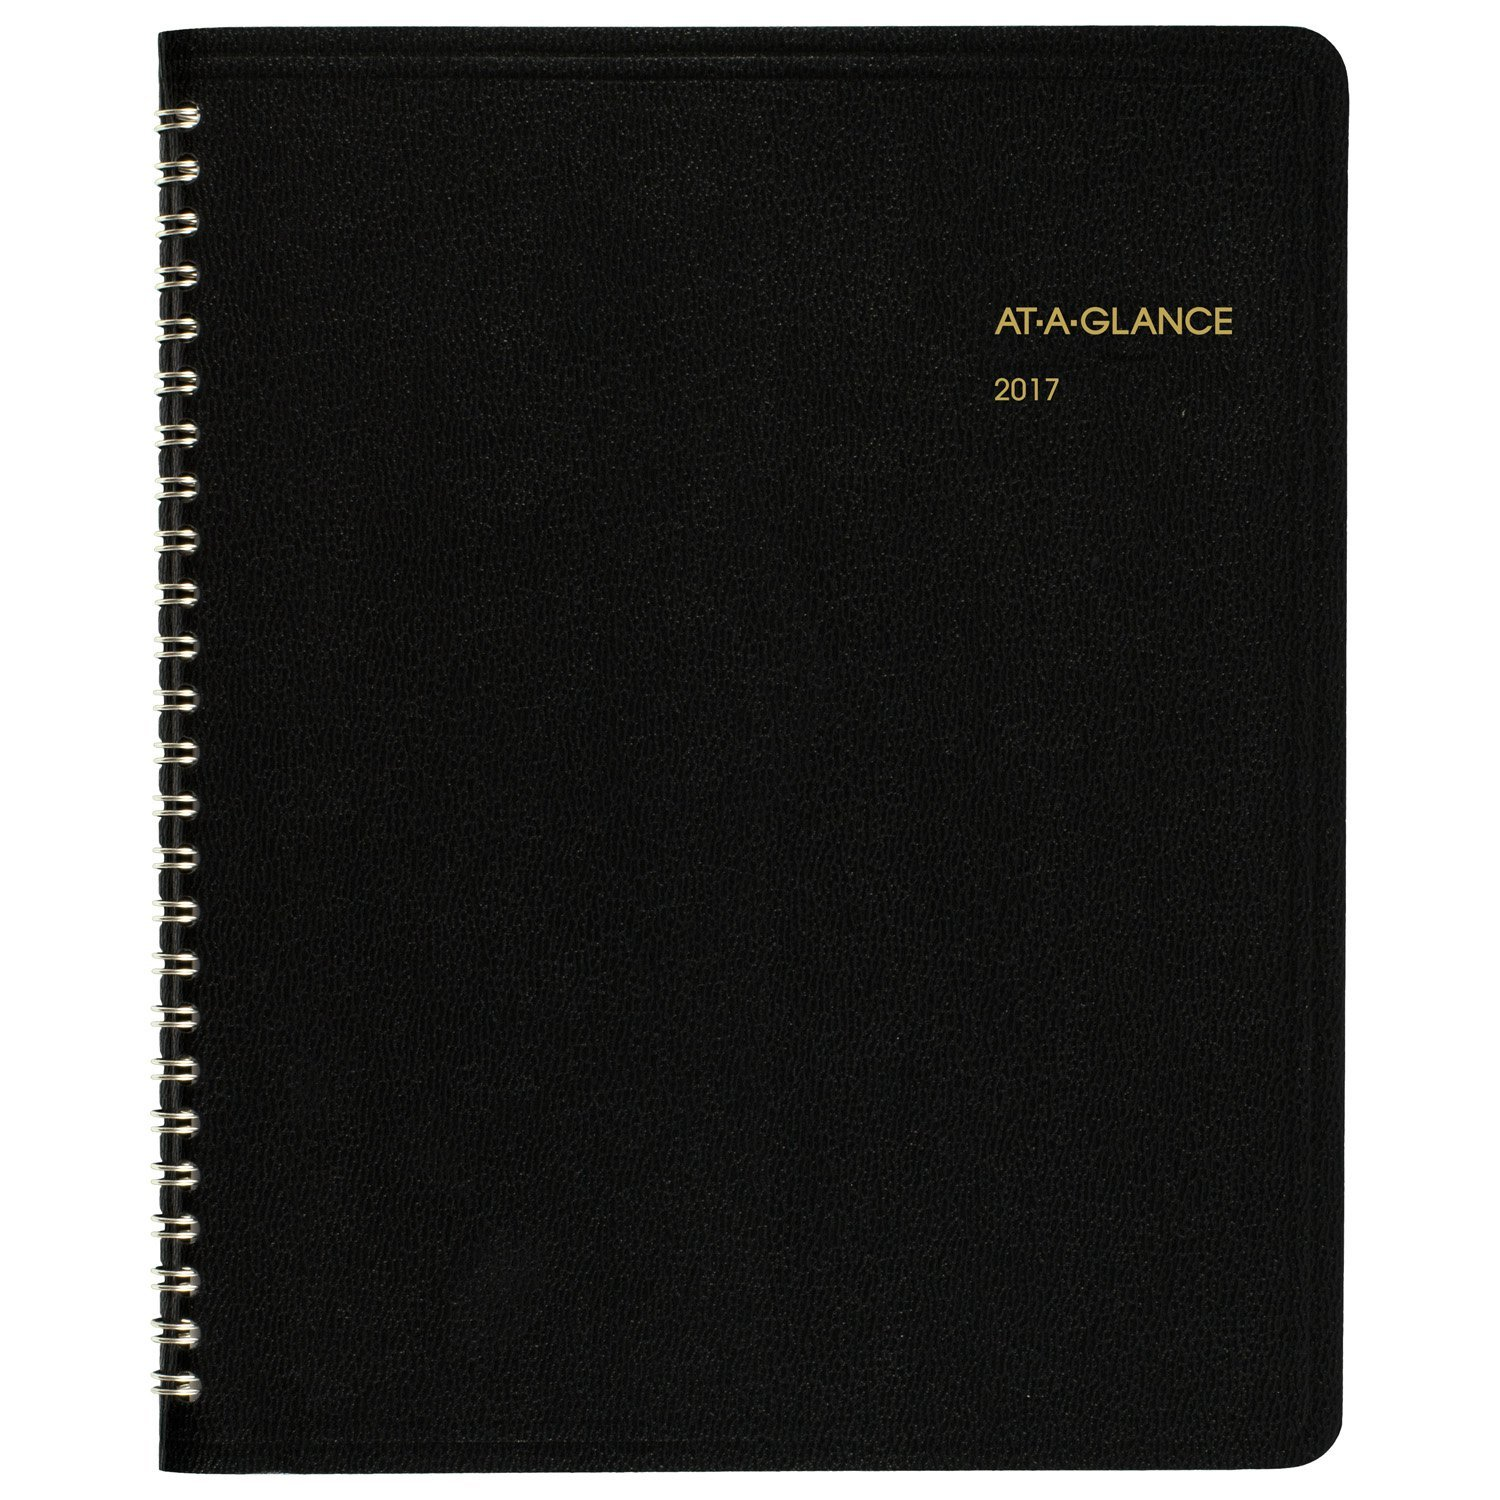 AT-A-GLANCE Monthly Planner / Appointment Book 2017, 6-7/8 x 8-3/4'', Black (7012005)